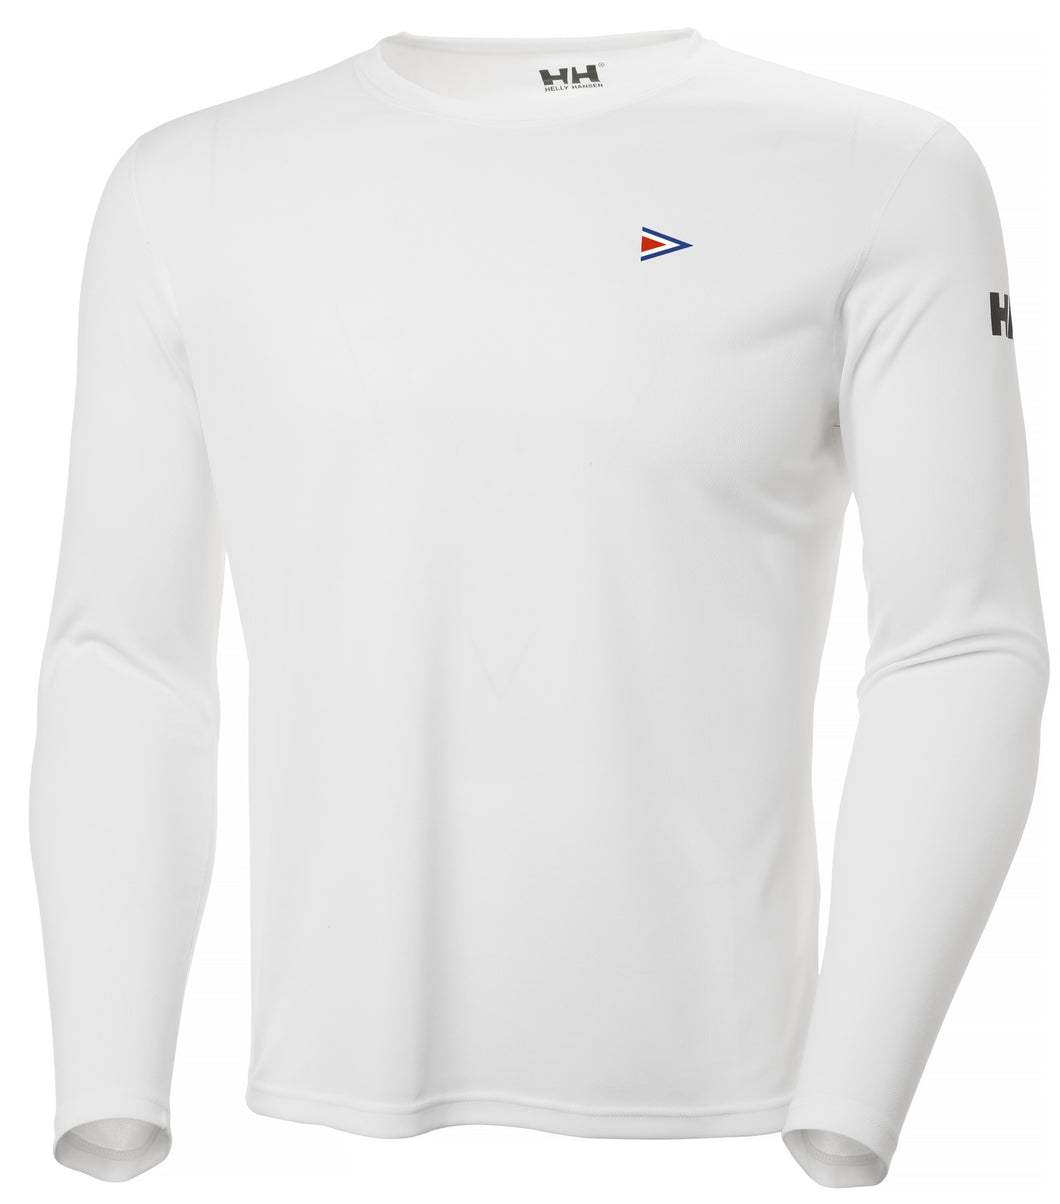 Helly Hansen Men's Long Sleeve Tech Crew